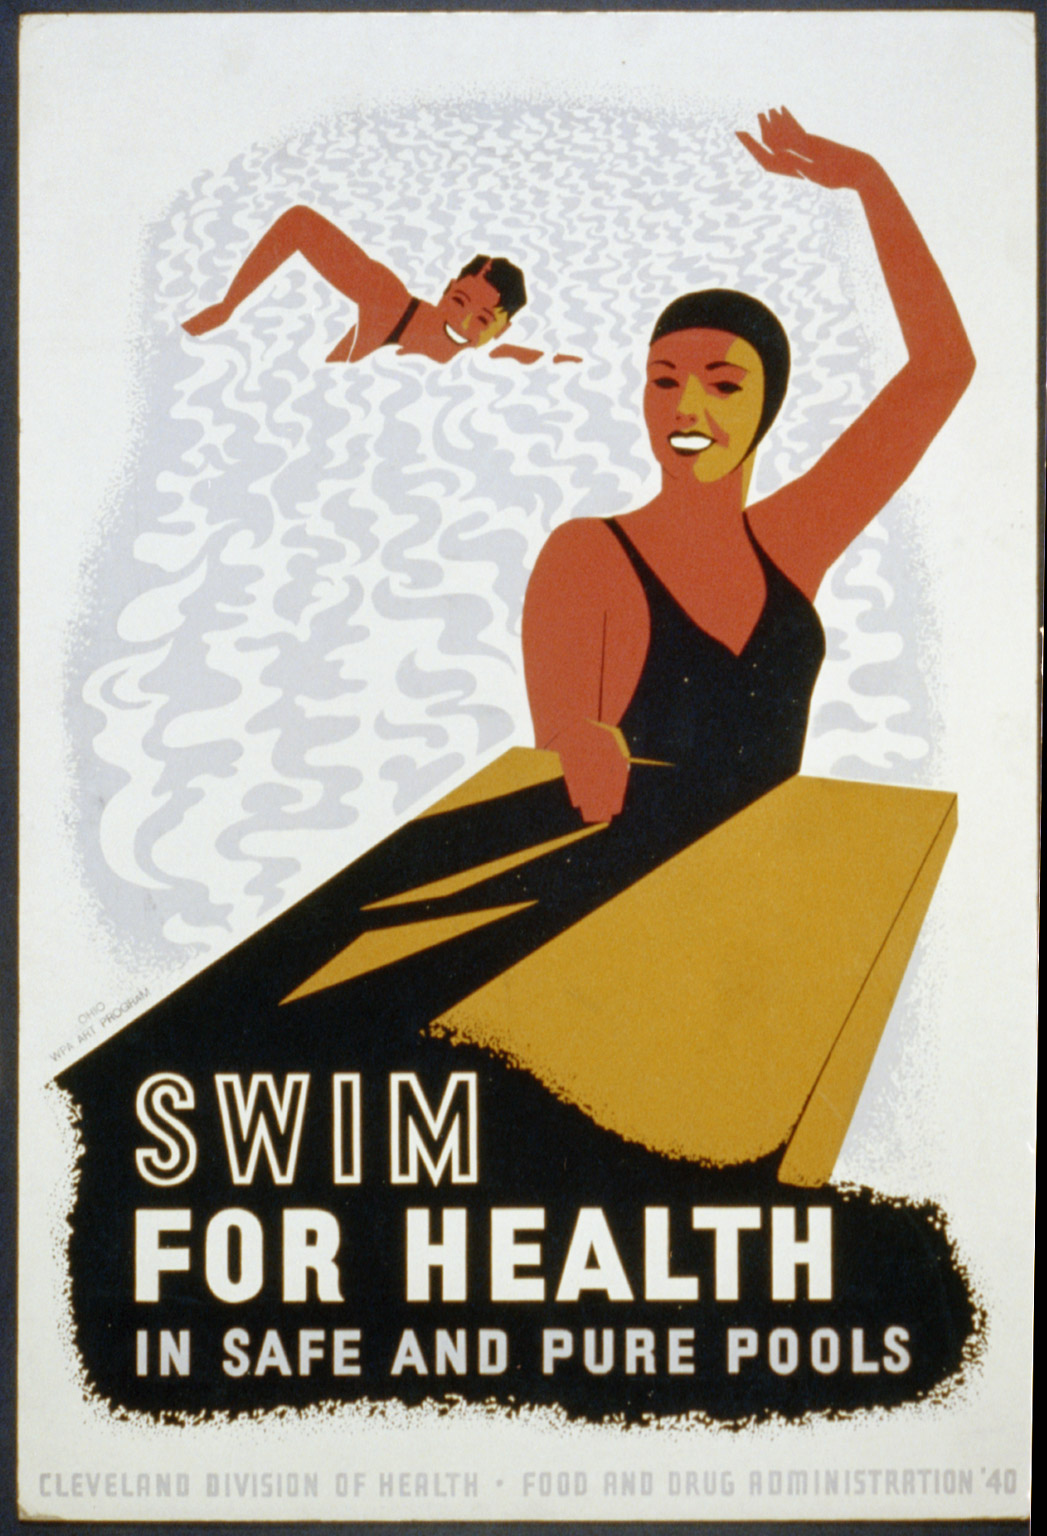 Poster for Cleveland Division of Health promoting swimming as healthy exercise, showing a man and a woman in a swimming pool. Created in 1940